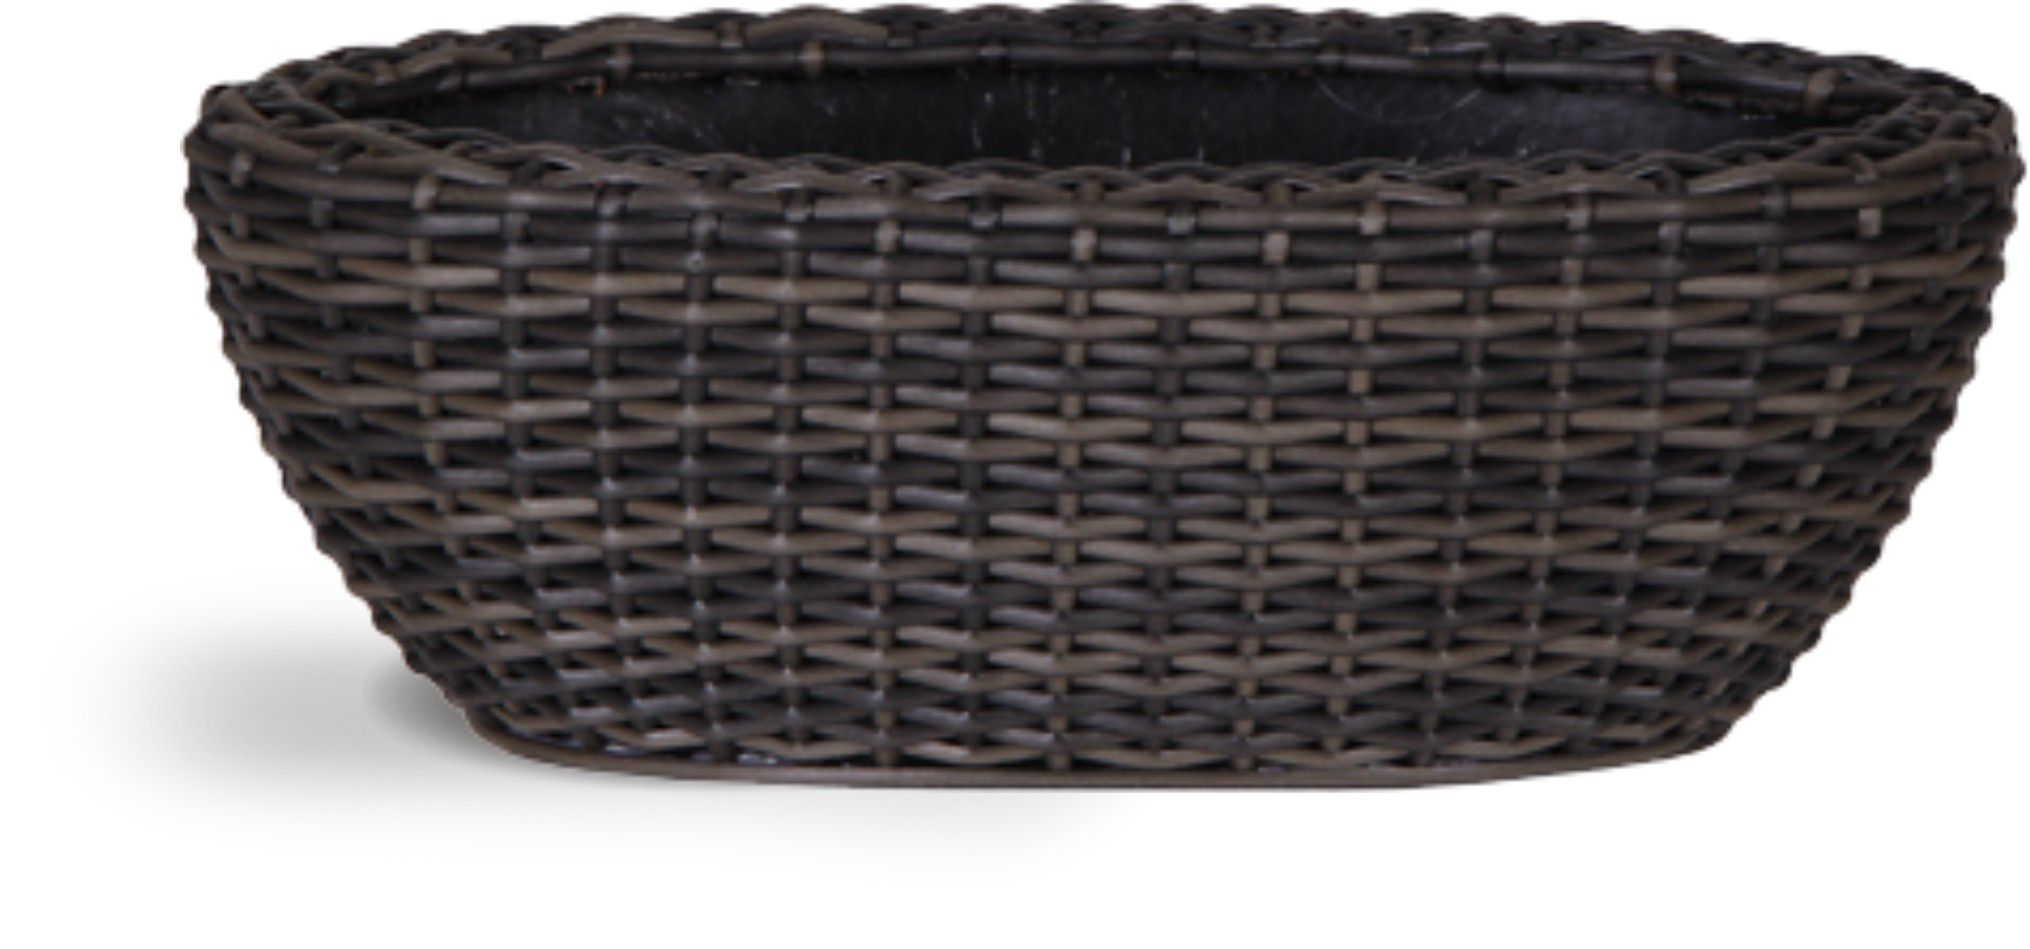 Ivyline Brown rattan wicker trough